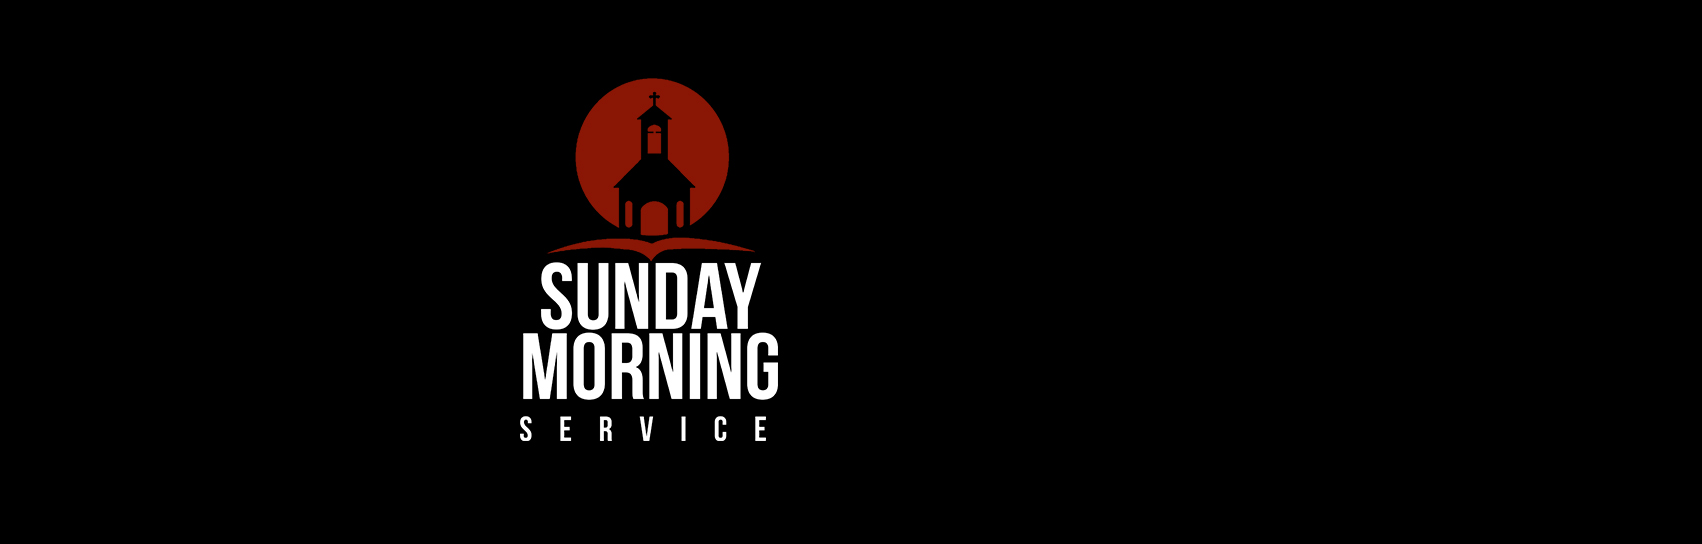 sundaymorningservice website